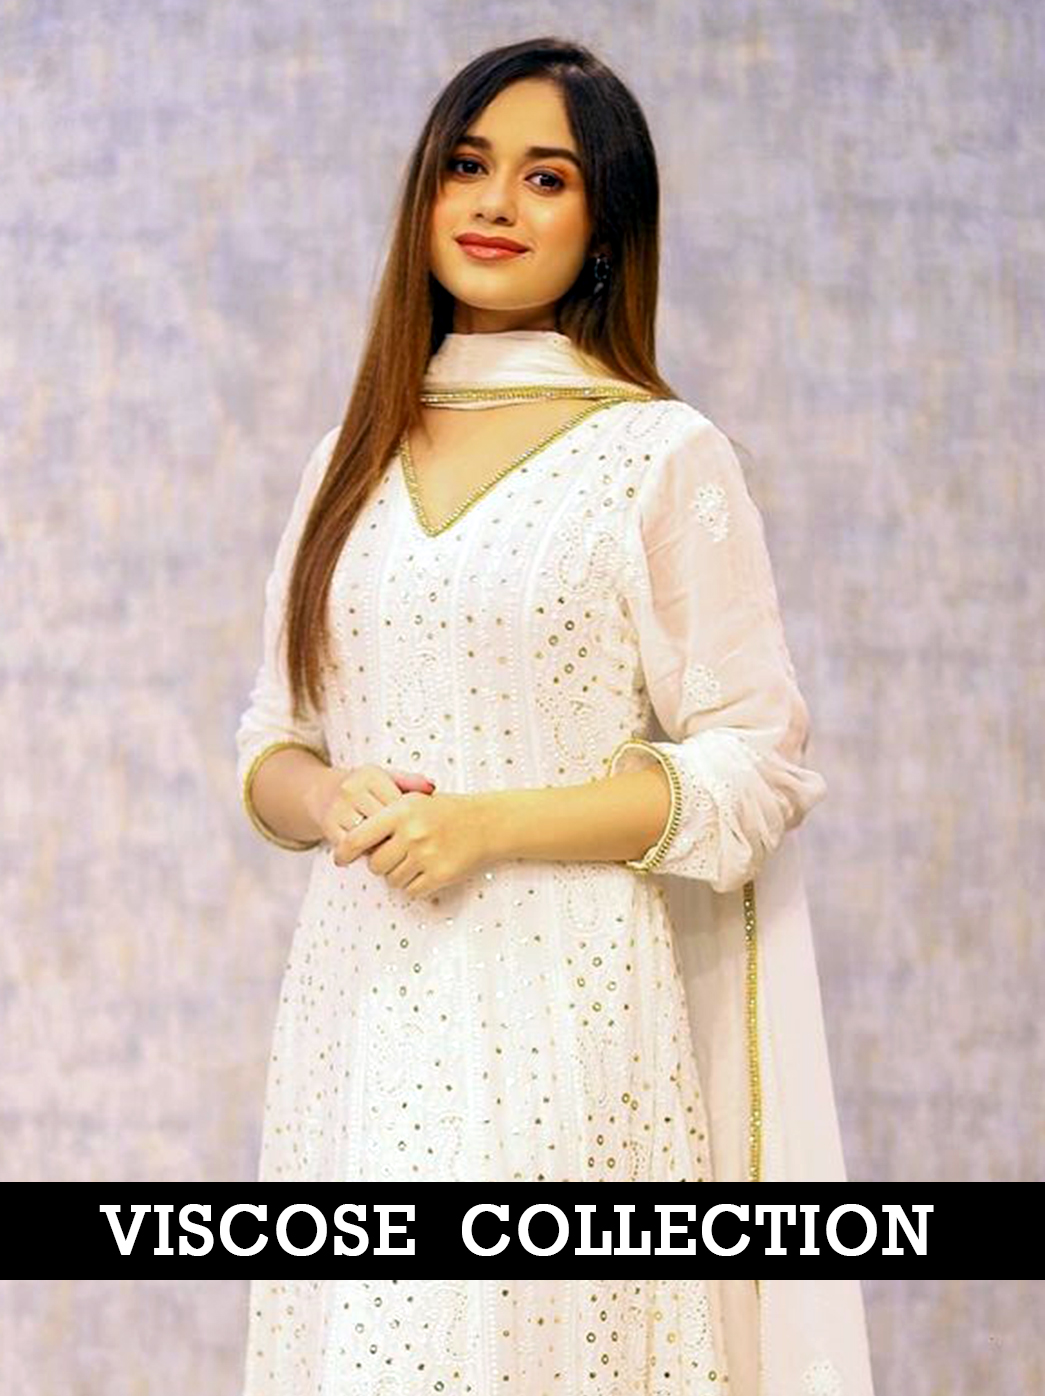 VISCOSE COLLECTION